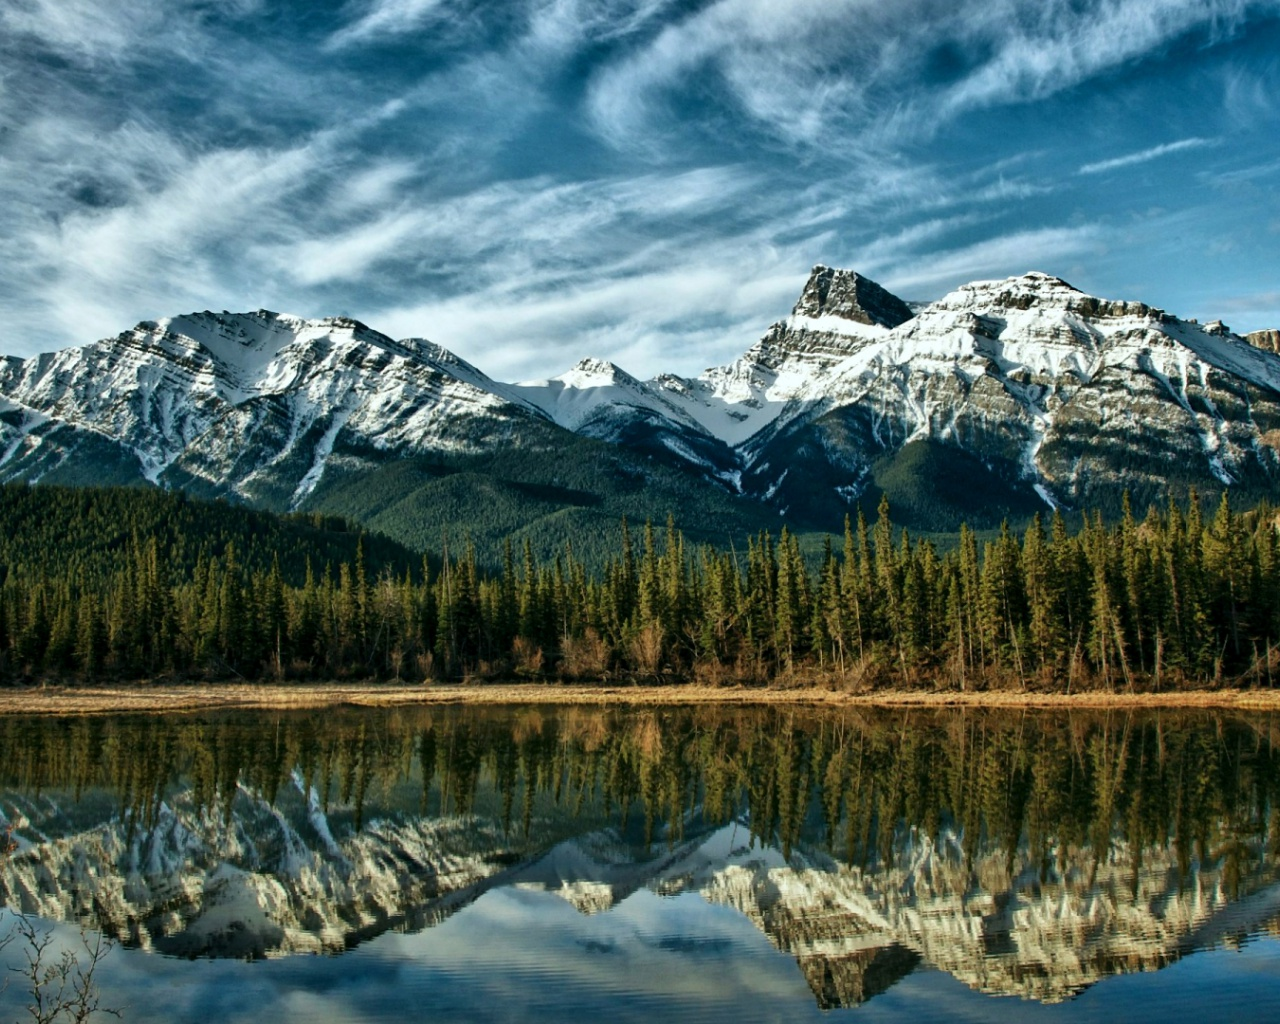 1280x1024 mountains forest lake canada desktop pc and mac for Home wallpaper canada